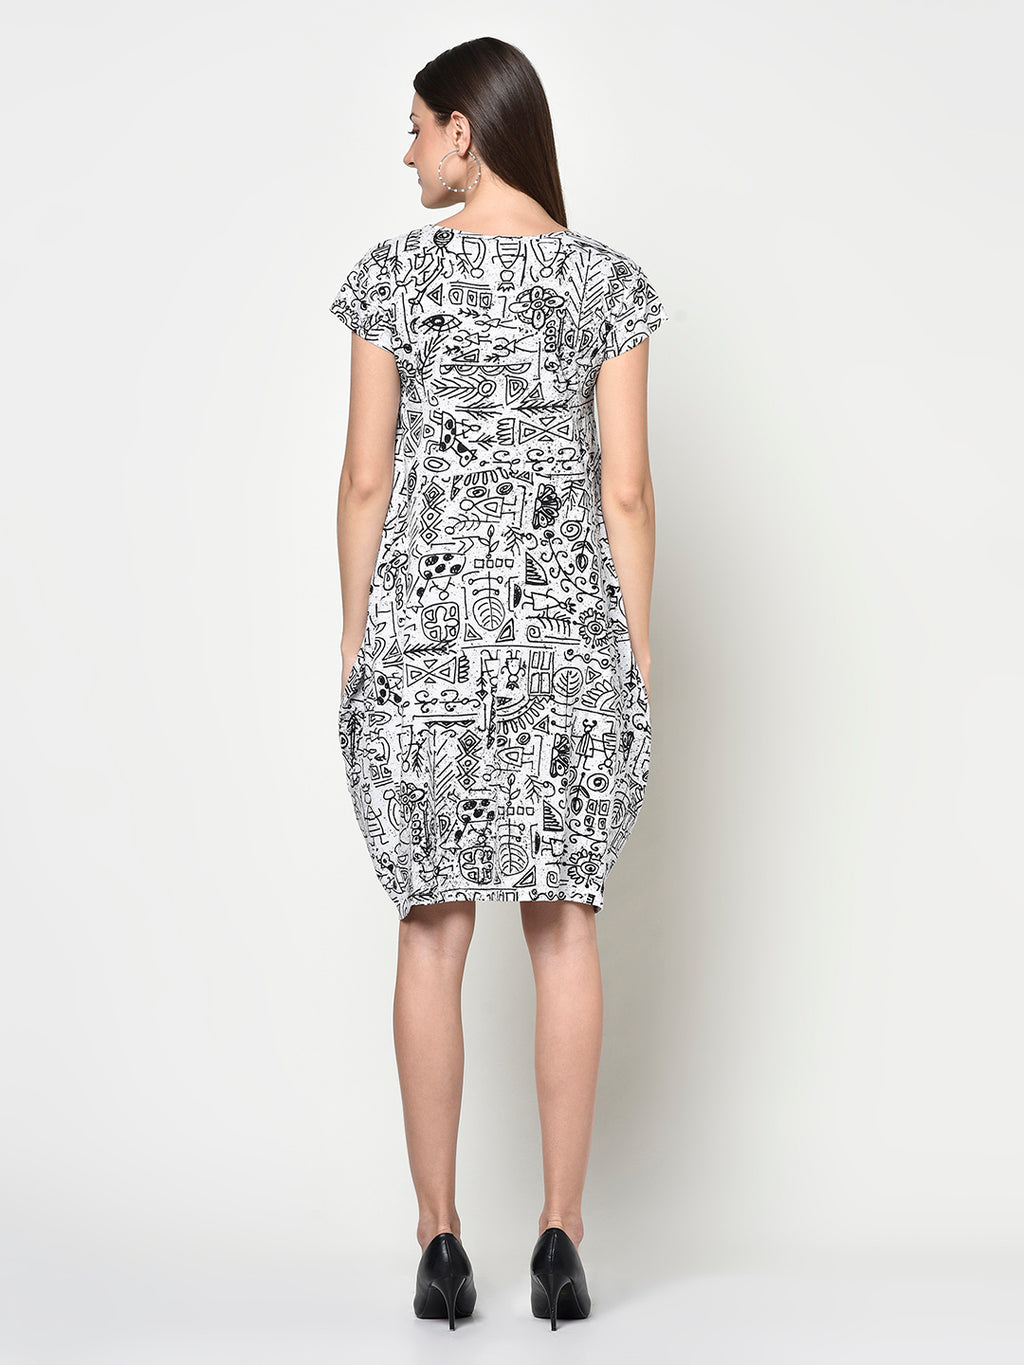 LADIES ABSTRACT PRINT BLACK AND WHITE BALLOON DRESS - Avsoy